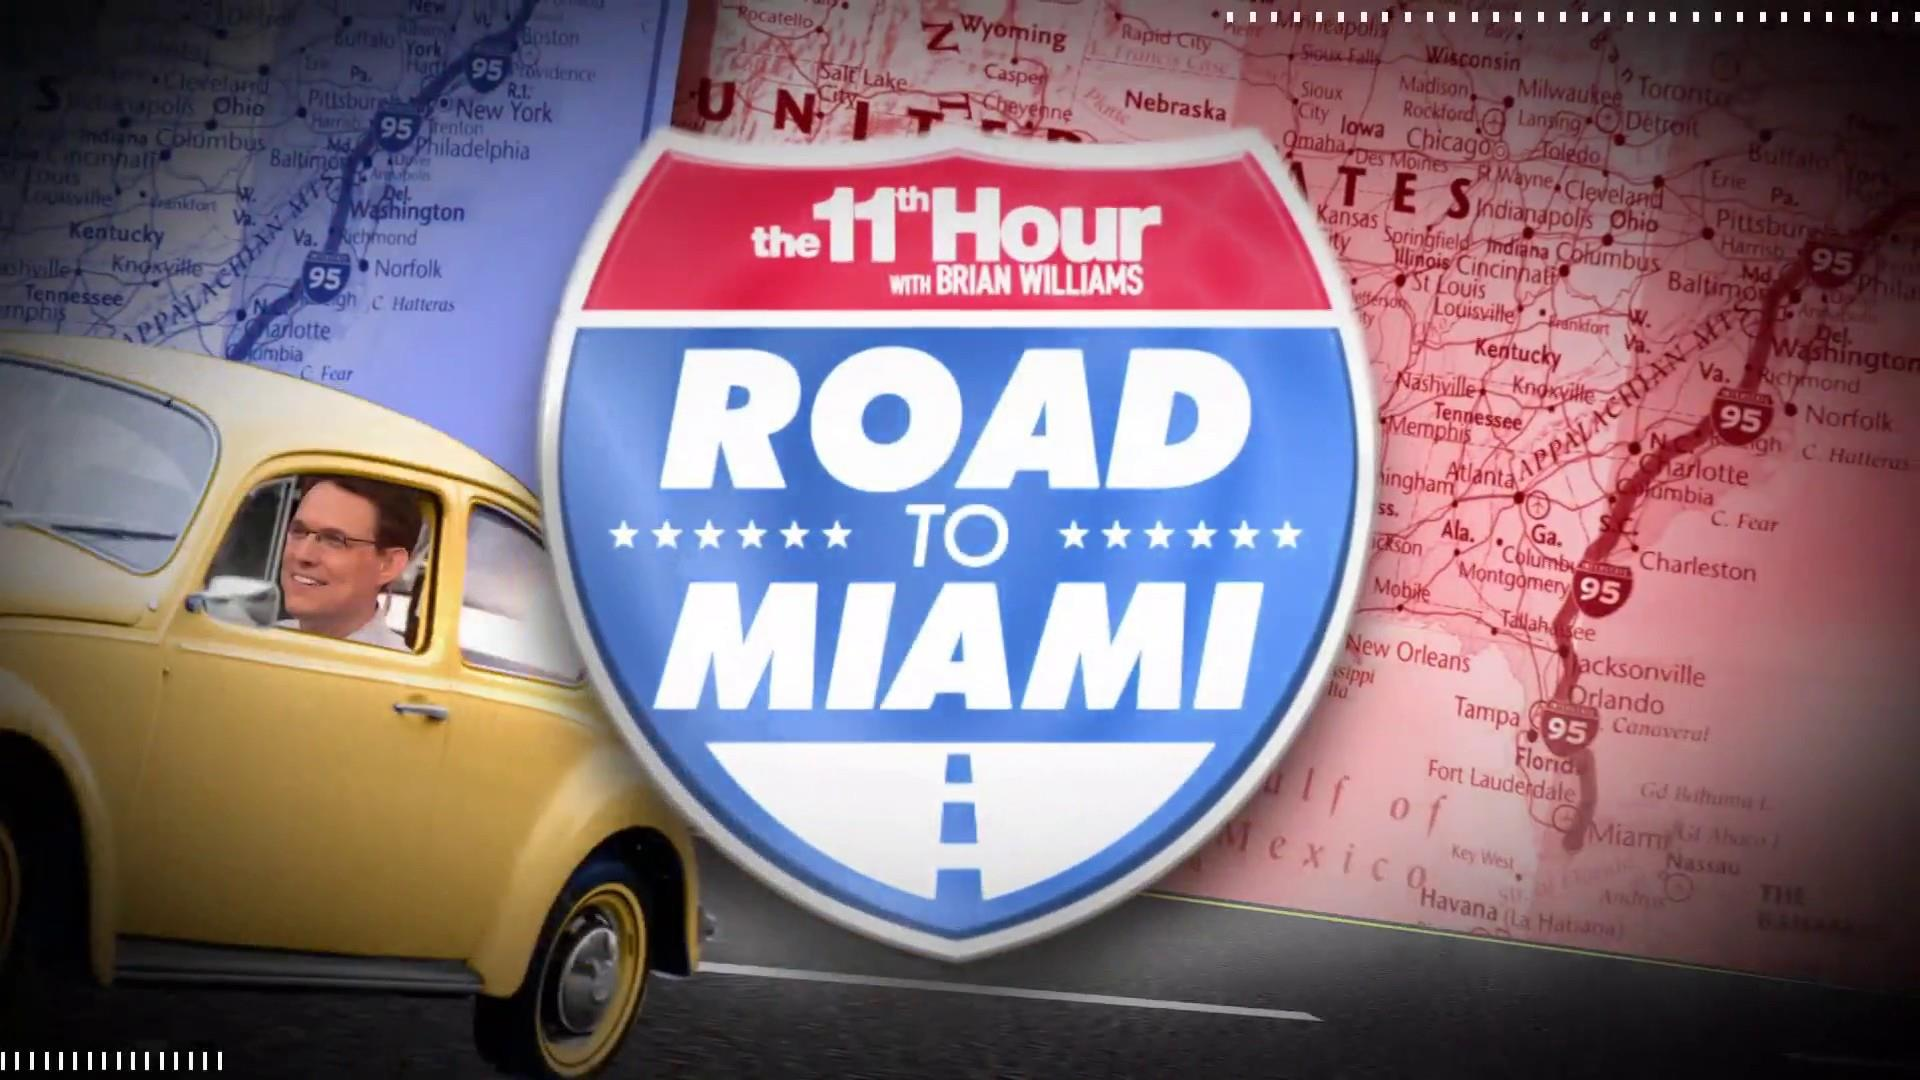 Road to Miami: Steve Kornacki on what you need to know about South Carolina before 2020